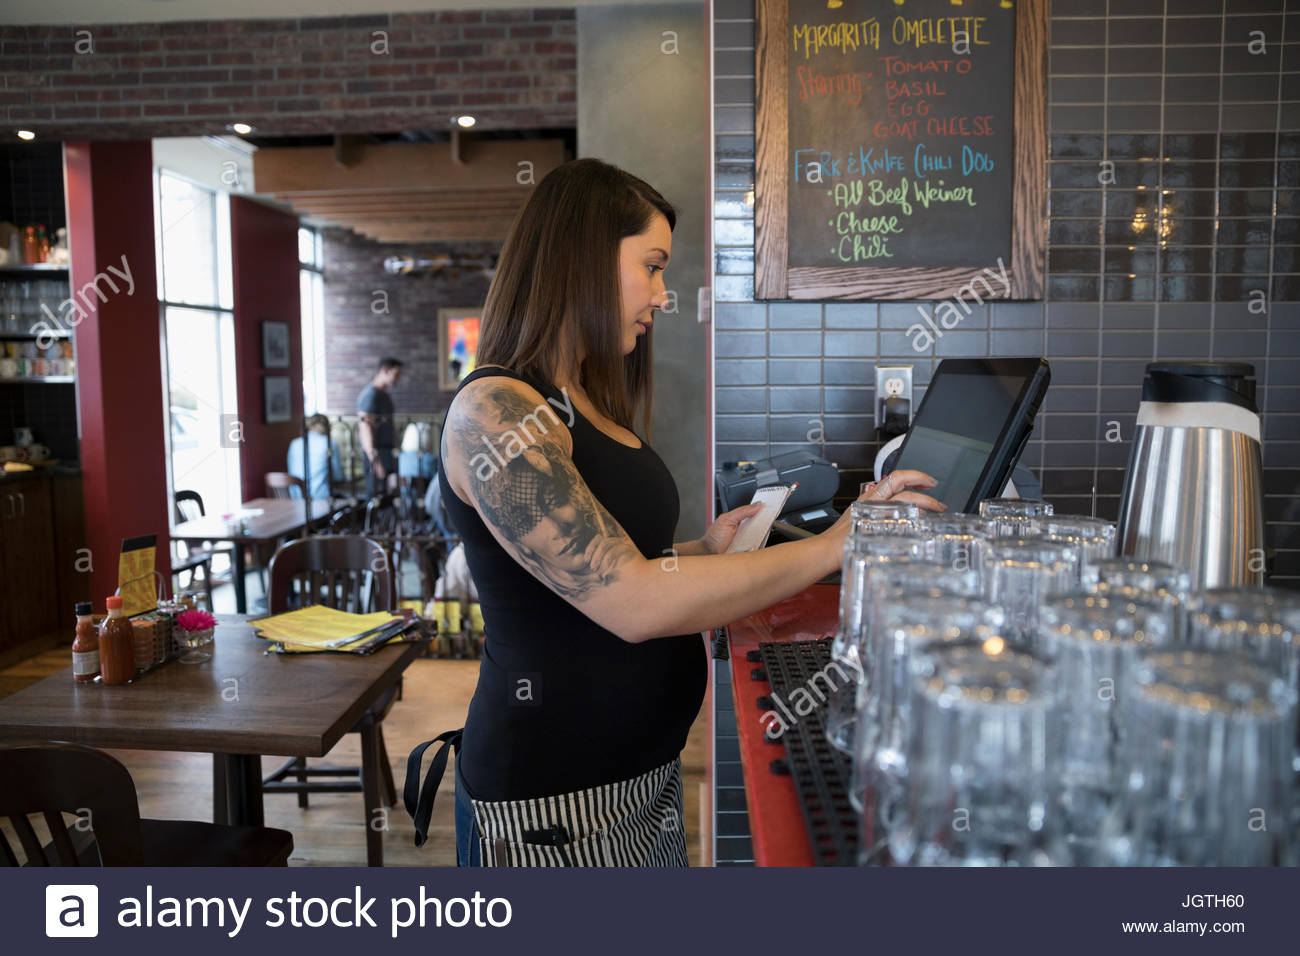 Pregnant tattooed waitress using computer, inputting order in restaurant - Stock Image